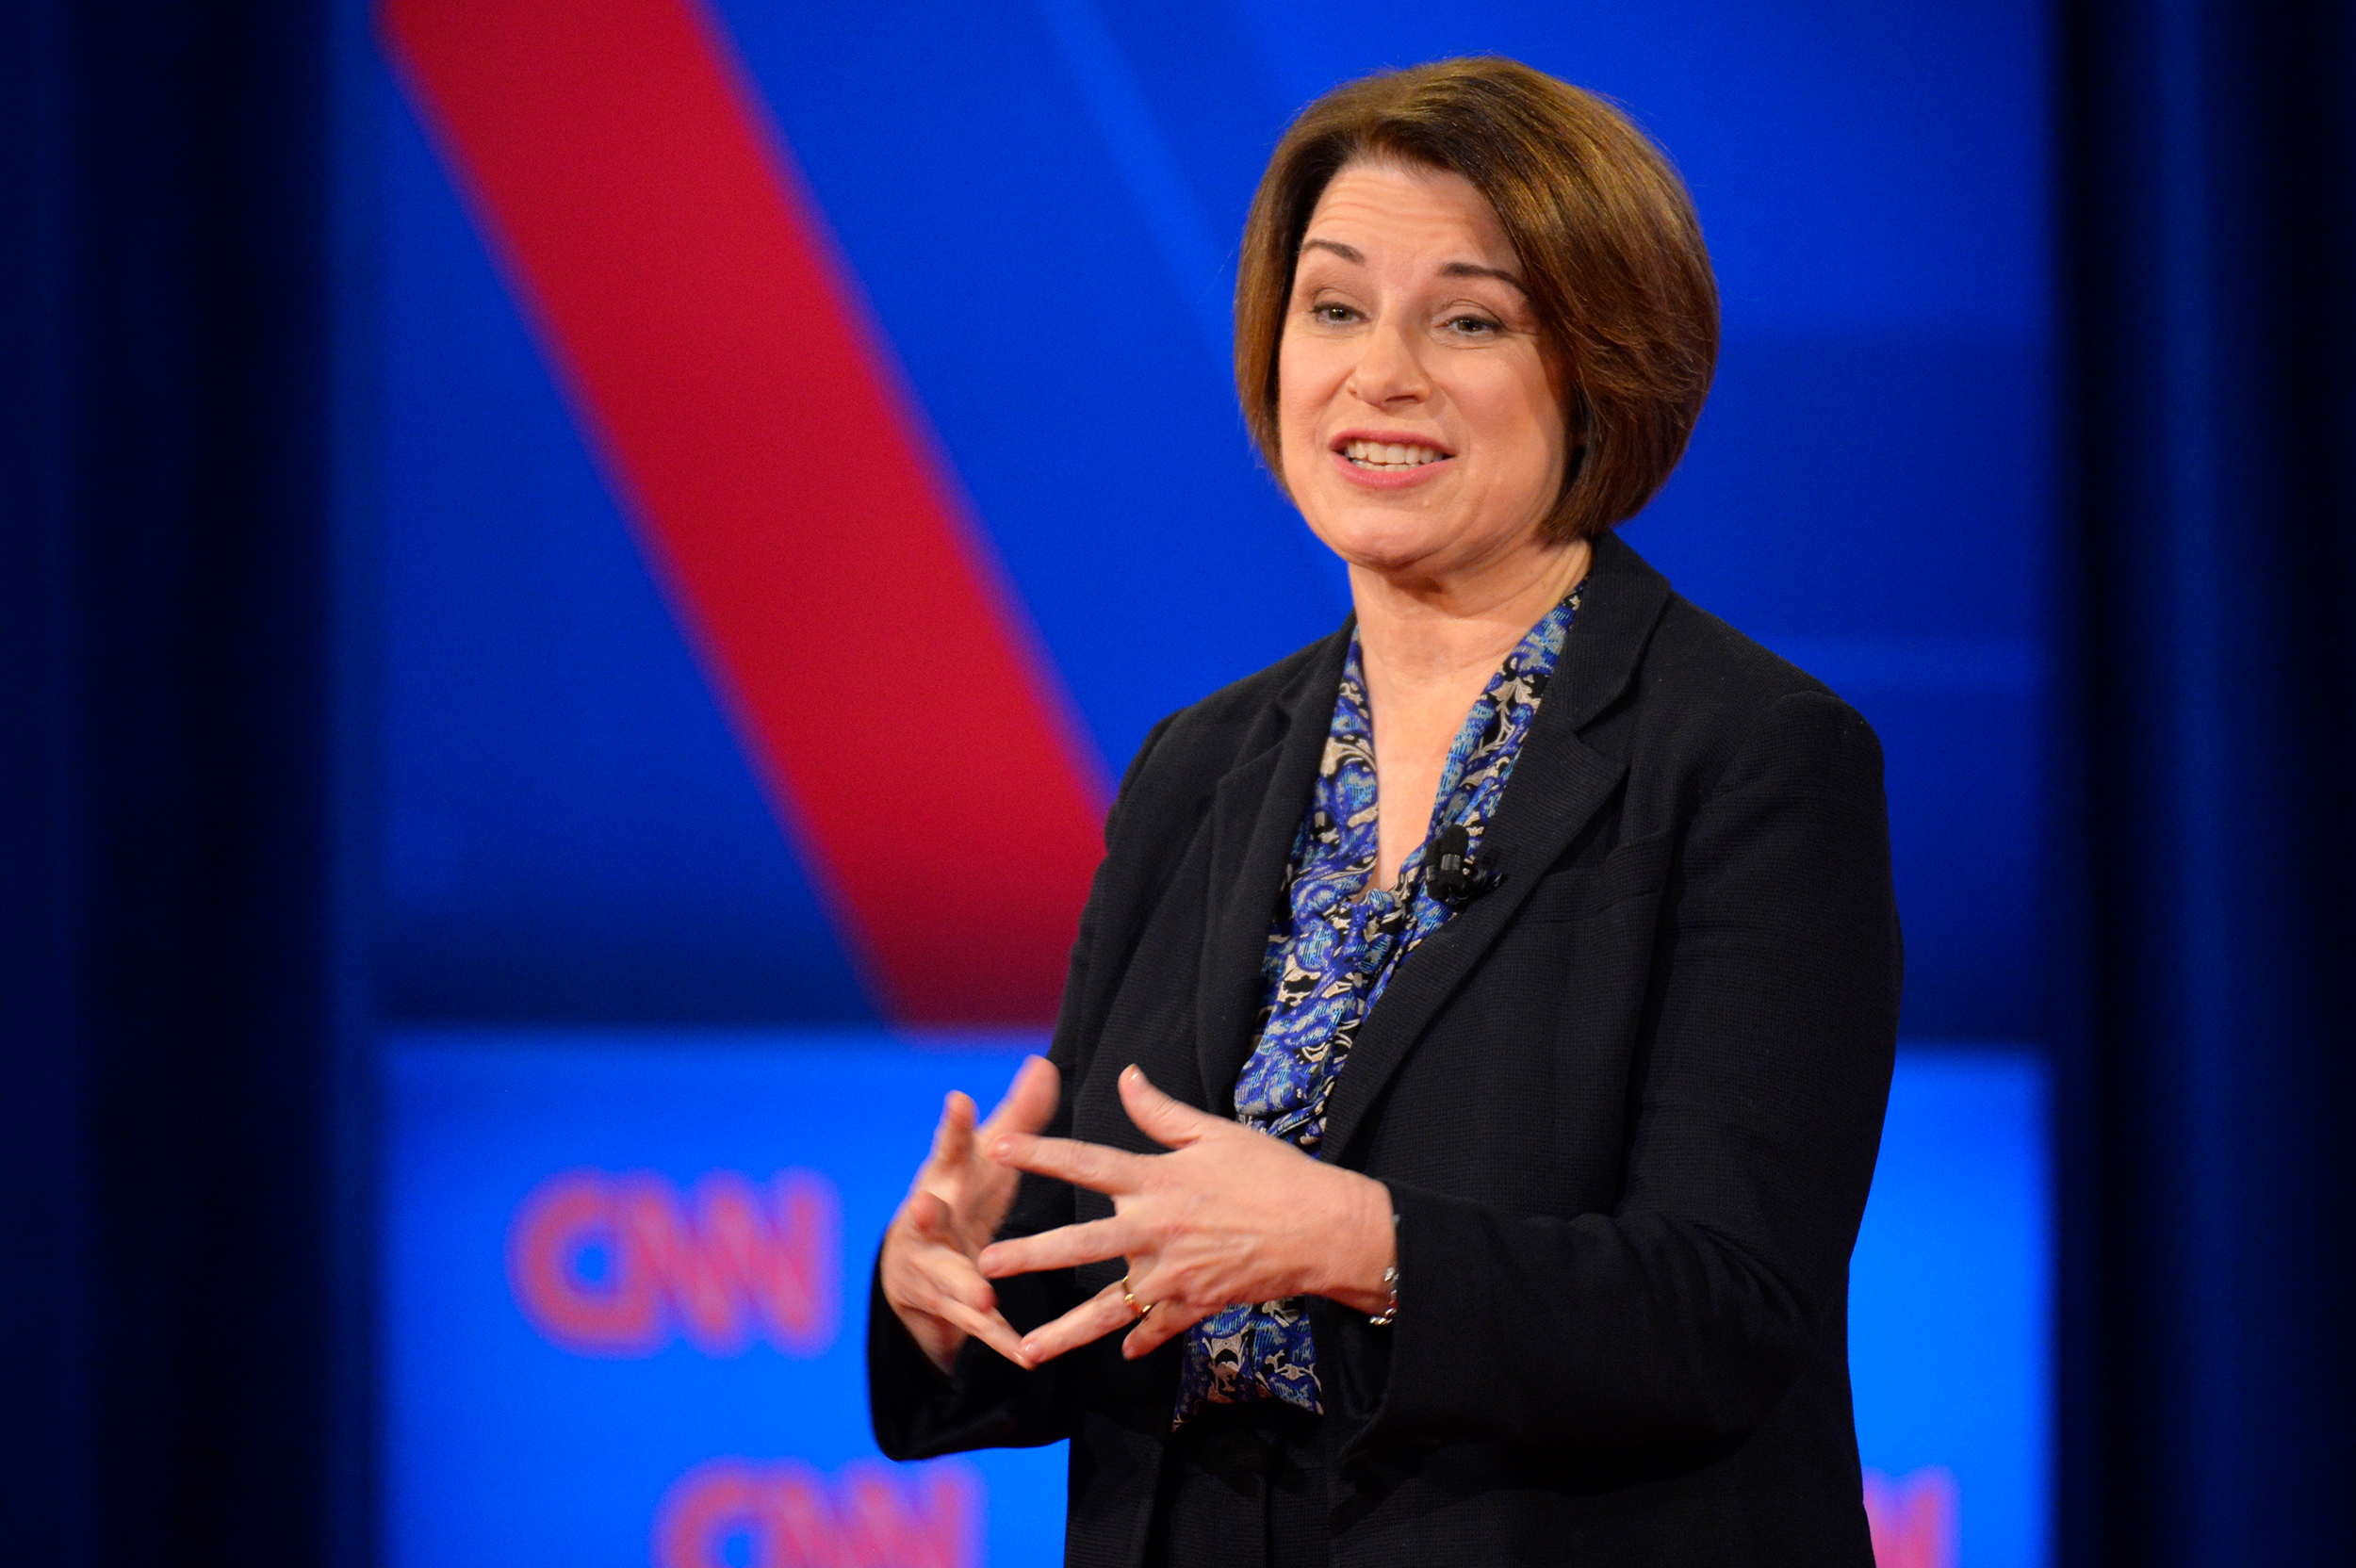 Amy Klobuchar abandons South Carolina as she looks ahead to Super Tuesday